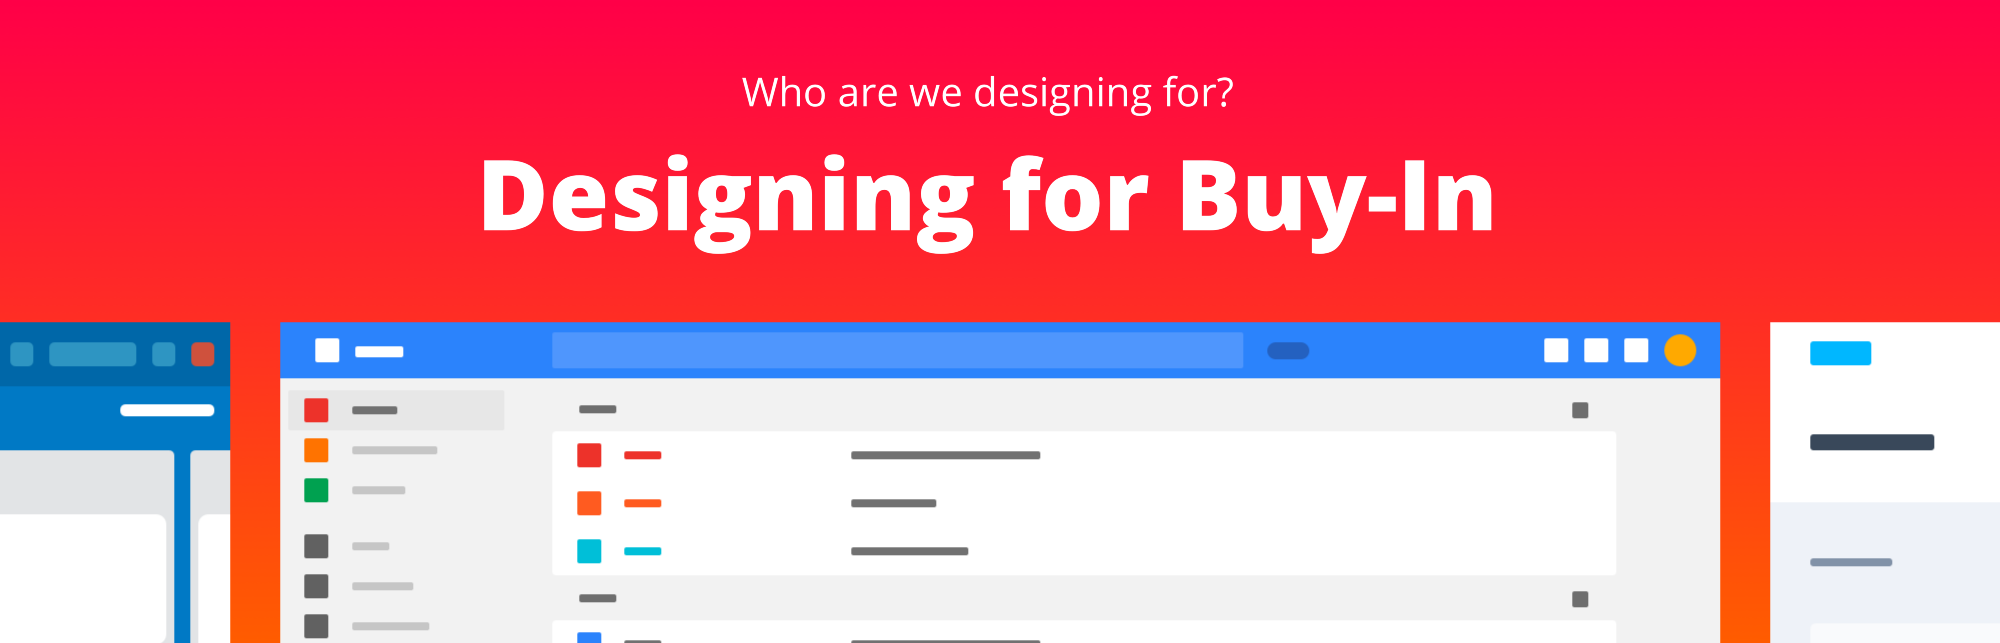 Who are we designing for? Designing for Buy-In (Part 1 of 3)